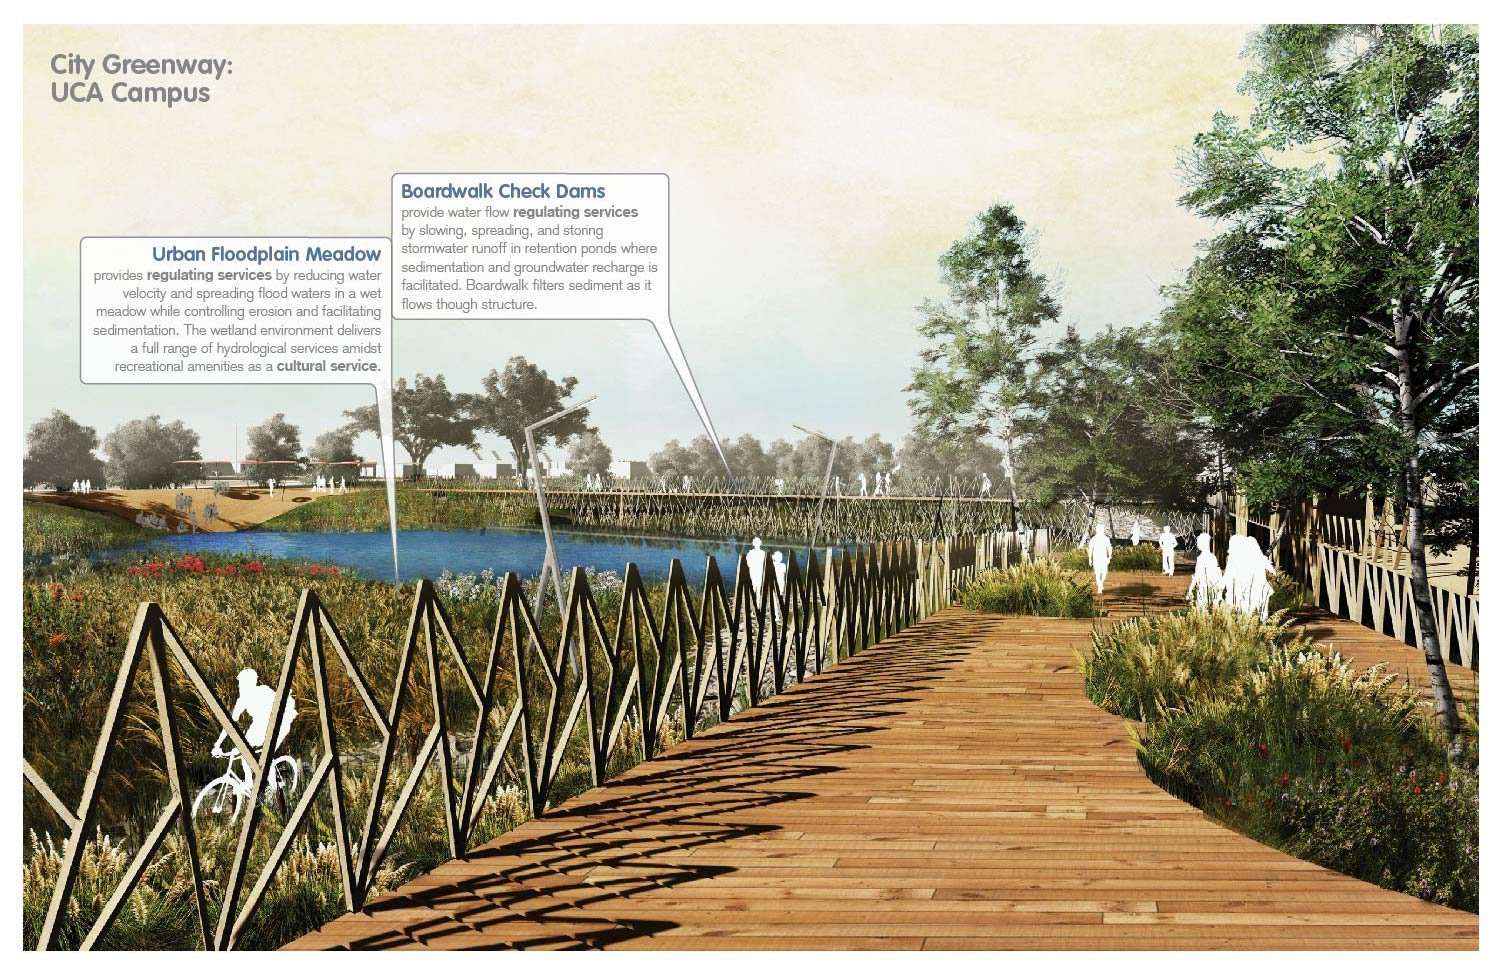 City Greenway: the urban floodplain meadow provides regulating services by reducing water velocity. University of Arkansas Community Design Center